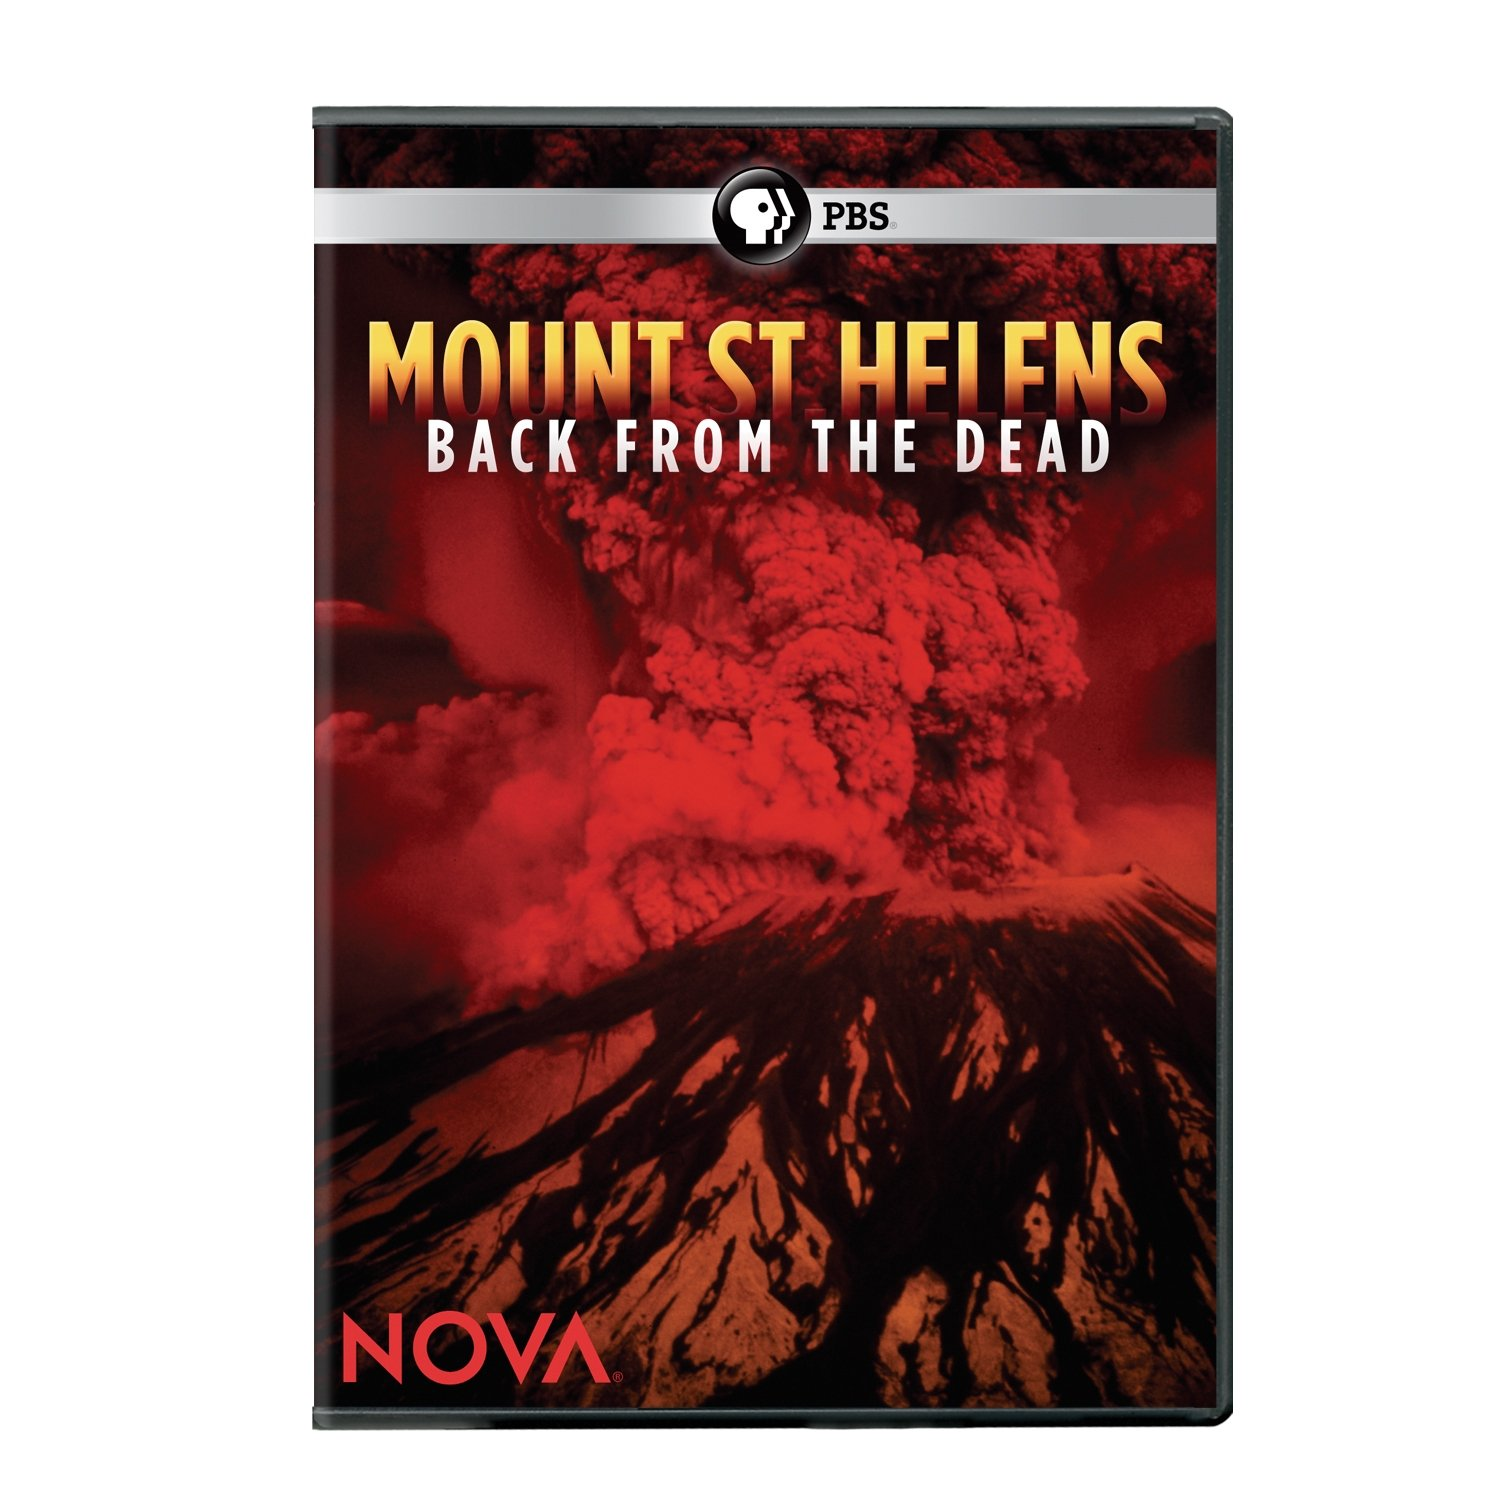 NOVA: Mount St. Helens: Back From The Dead PBS DVD